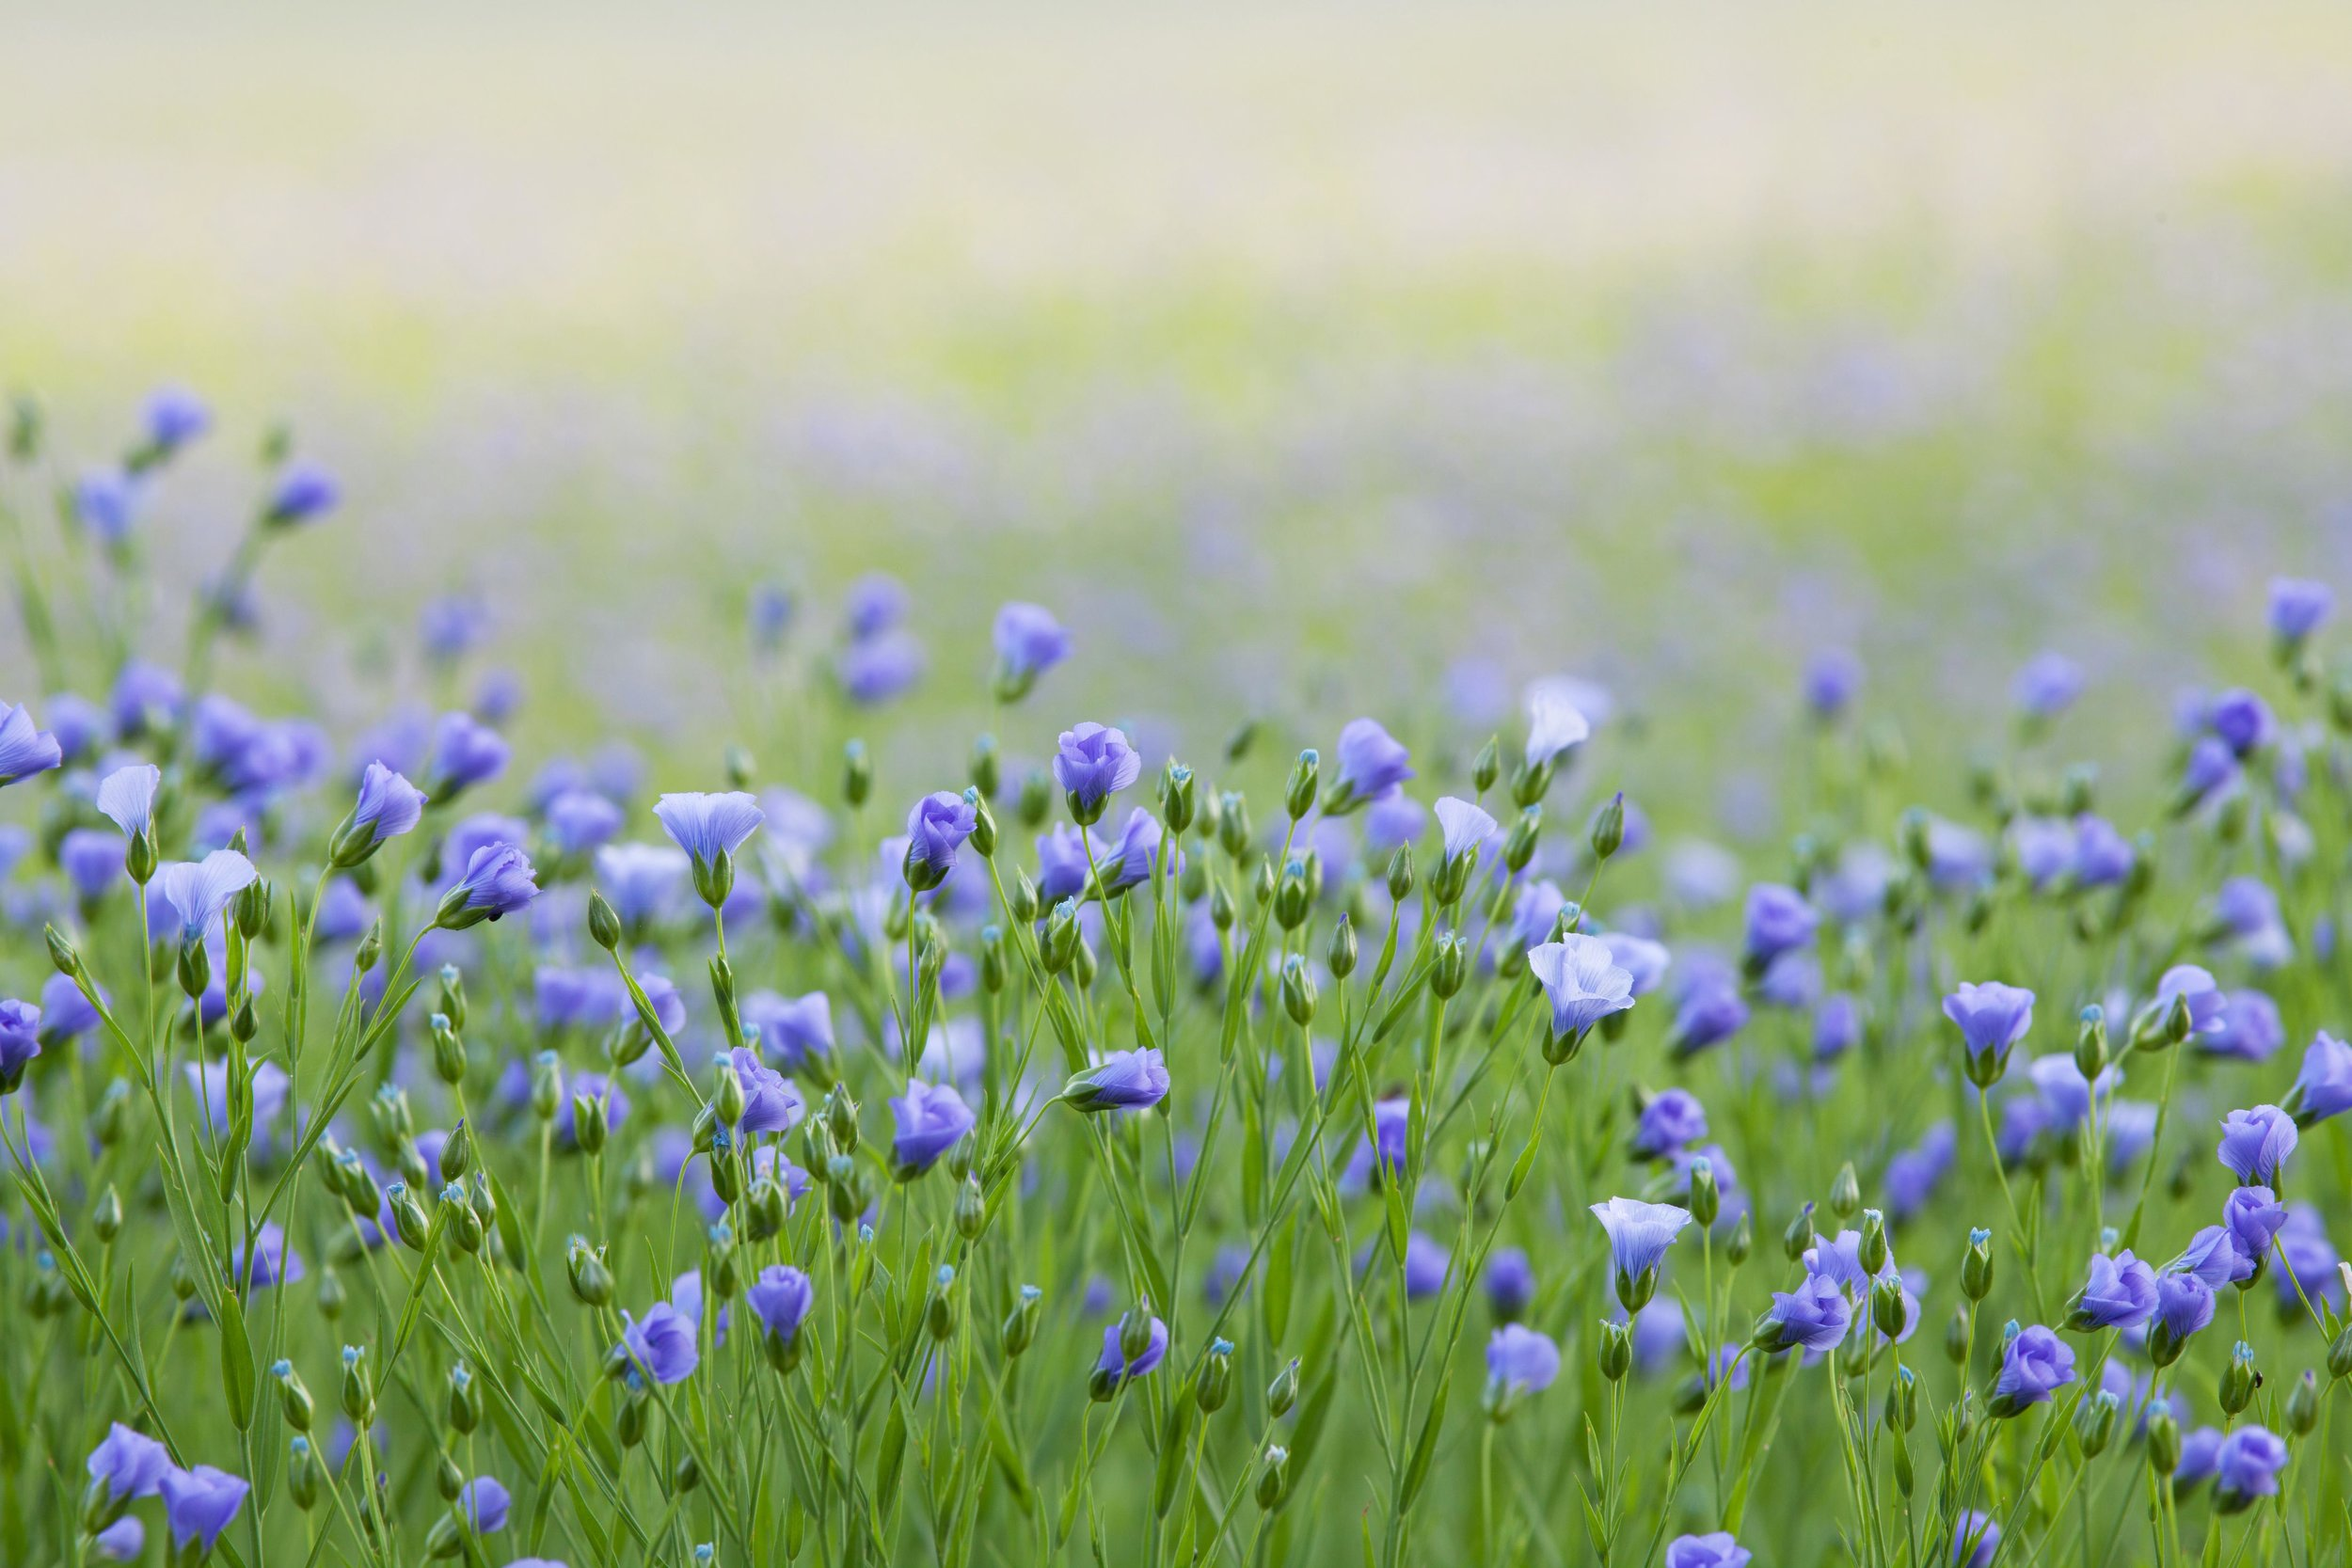 Flax Flowers in Bloom.jpg